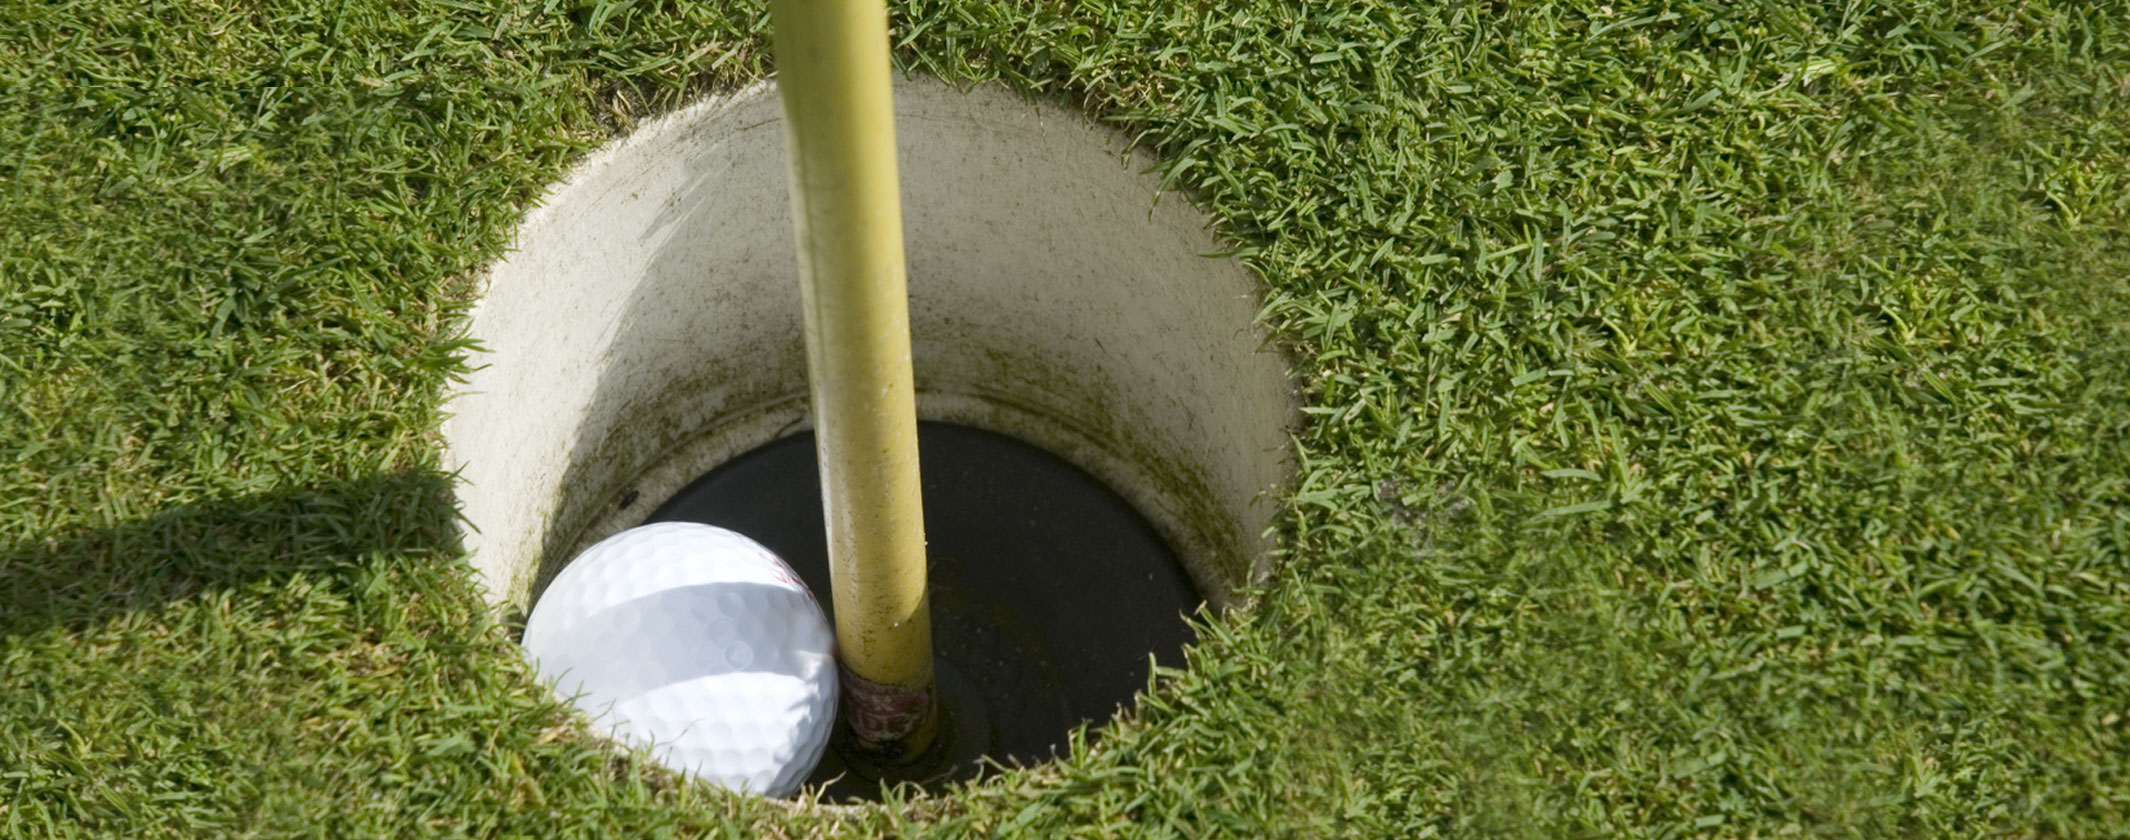 UK is Hole-in-One capital of the world